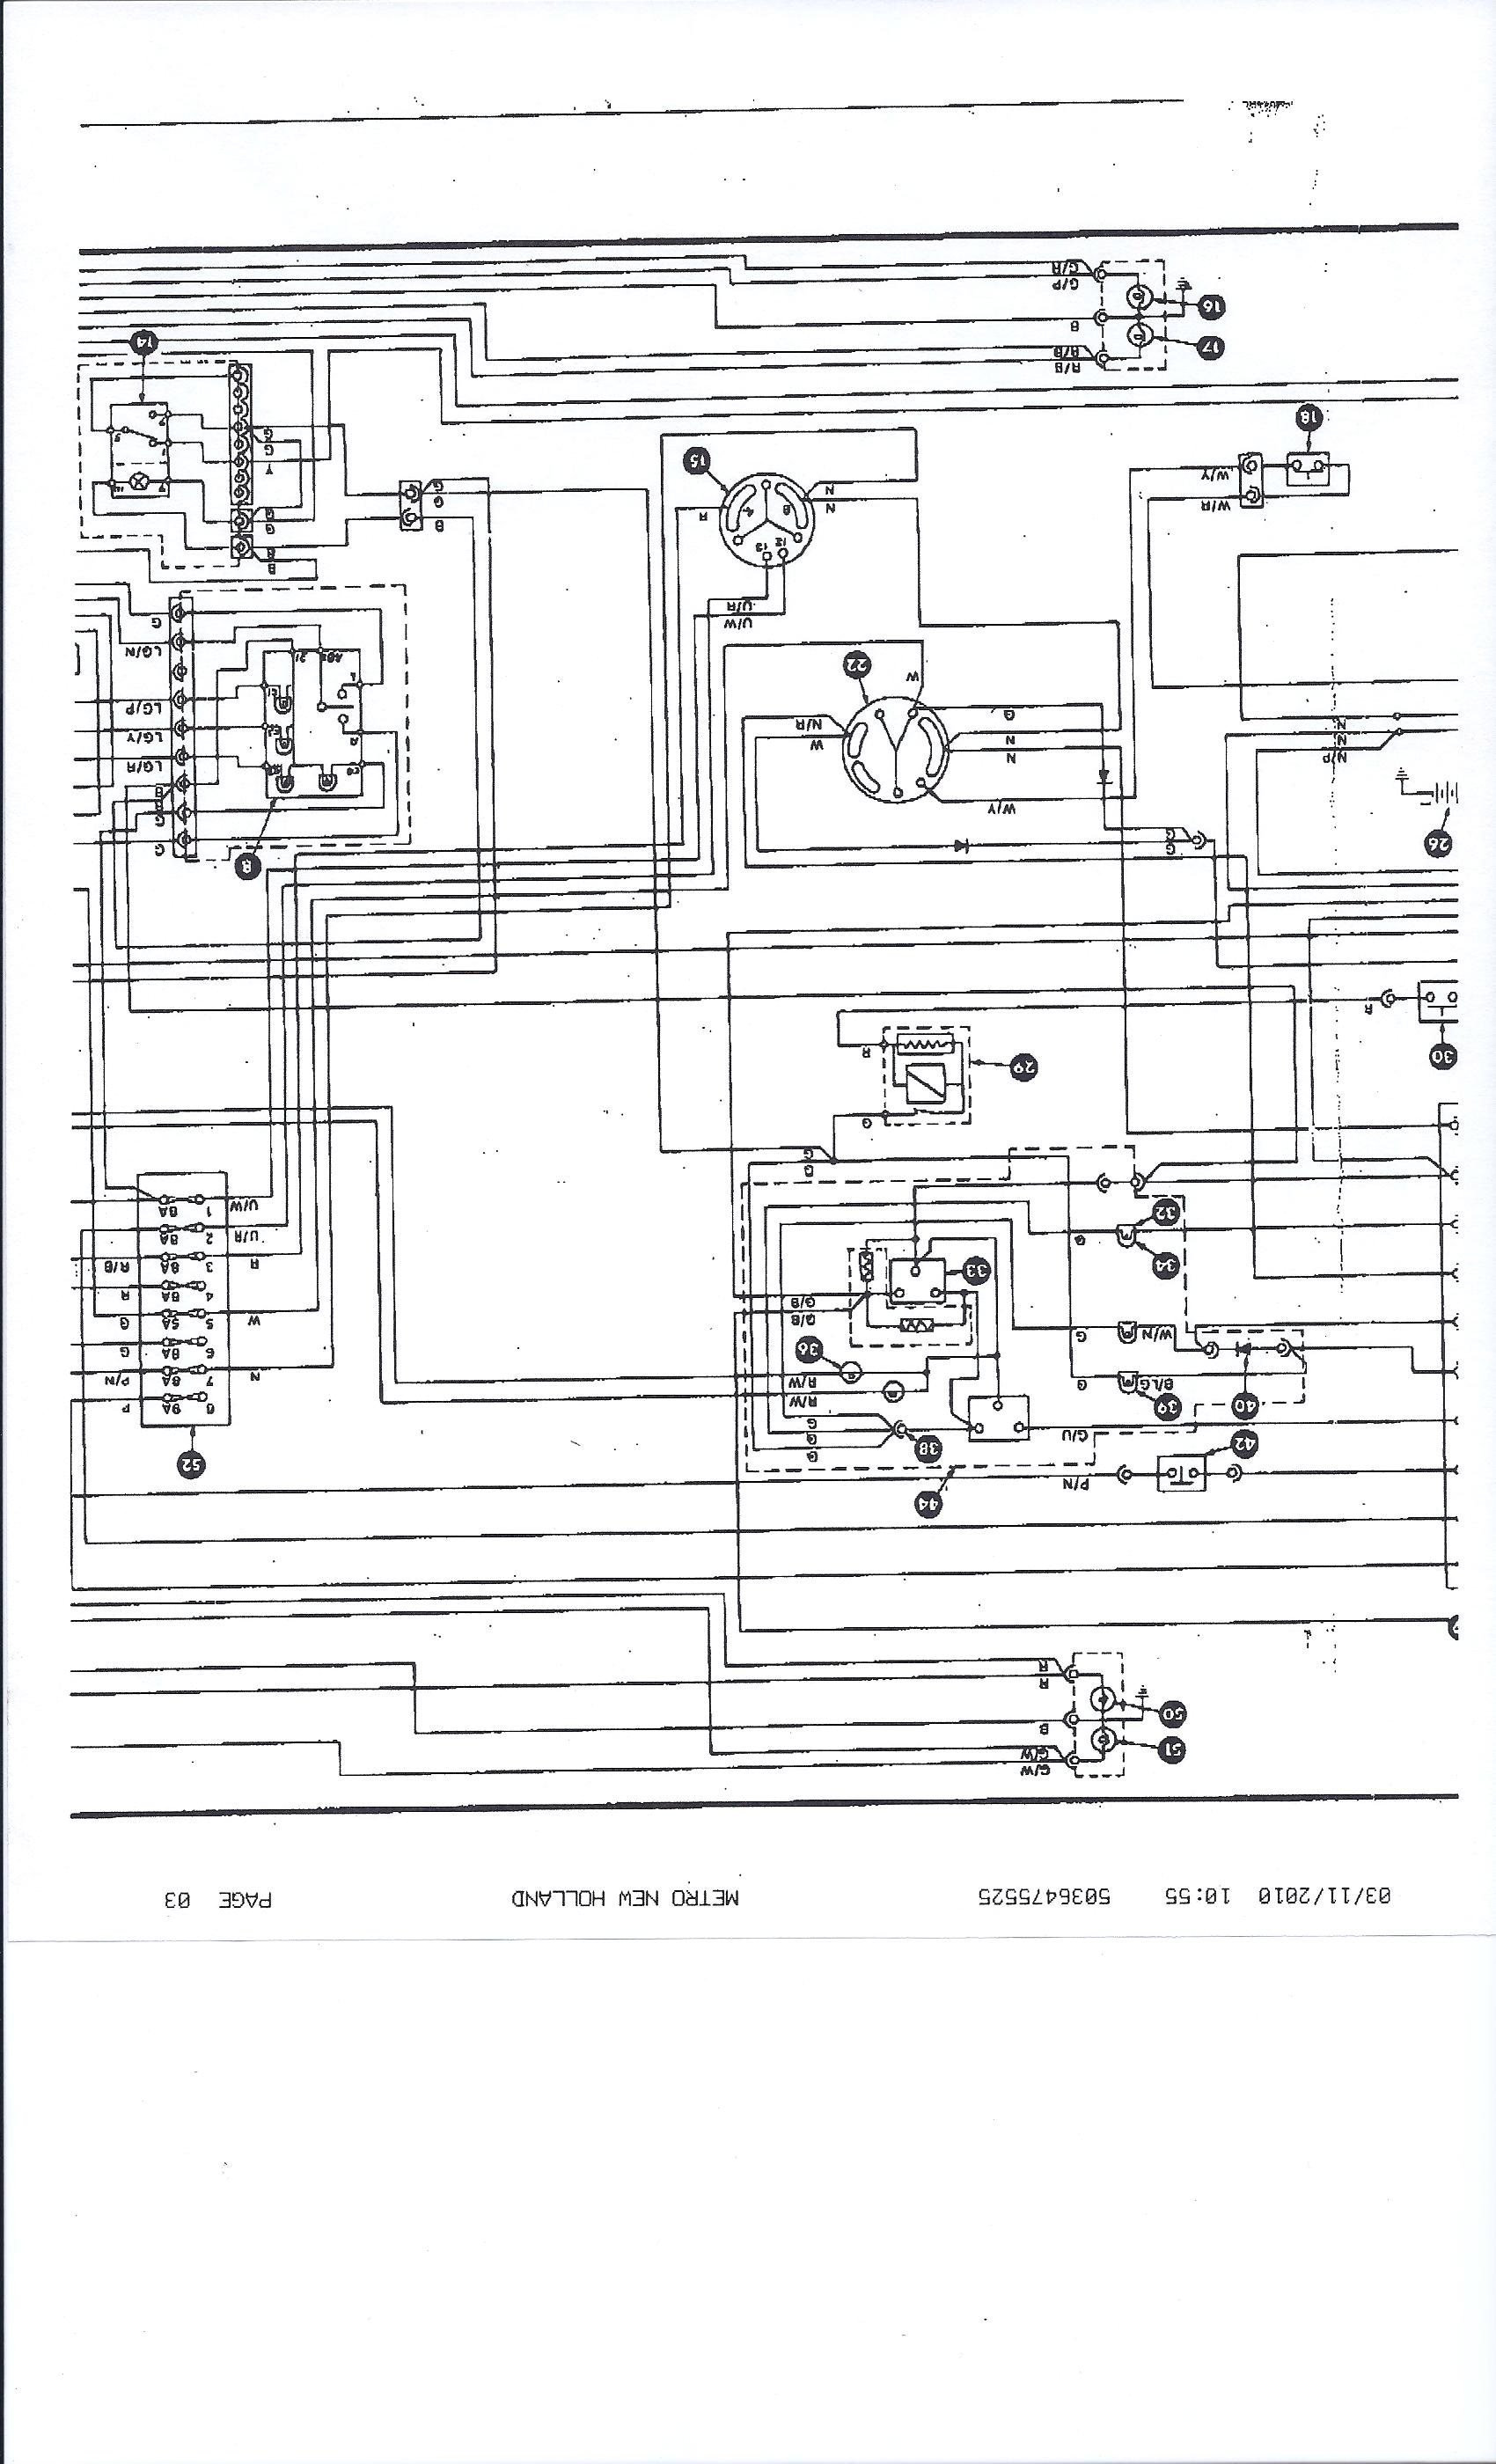 Ansi By besides C Fd D as well Software Application Architecture Diagram Application Ex le Software Architecture Diagram Ex le Visio besides  further Electric Circuit Symbols Flashcards. on electrical wiring diagram symbols